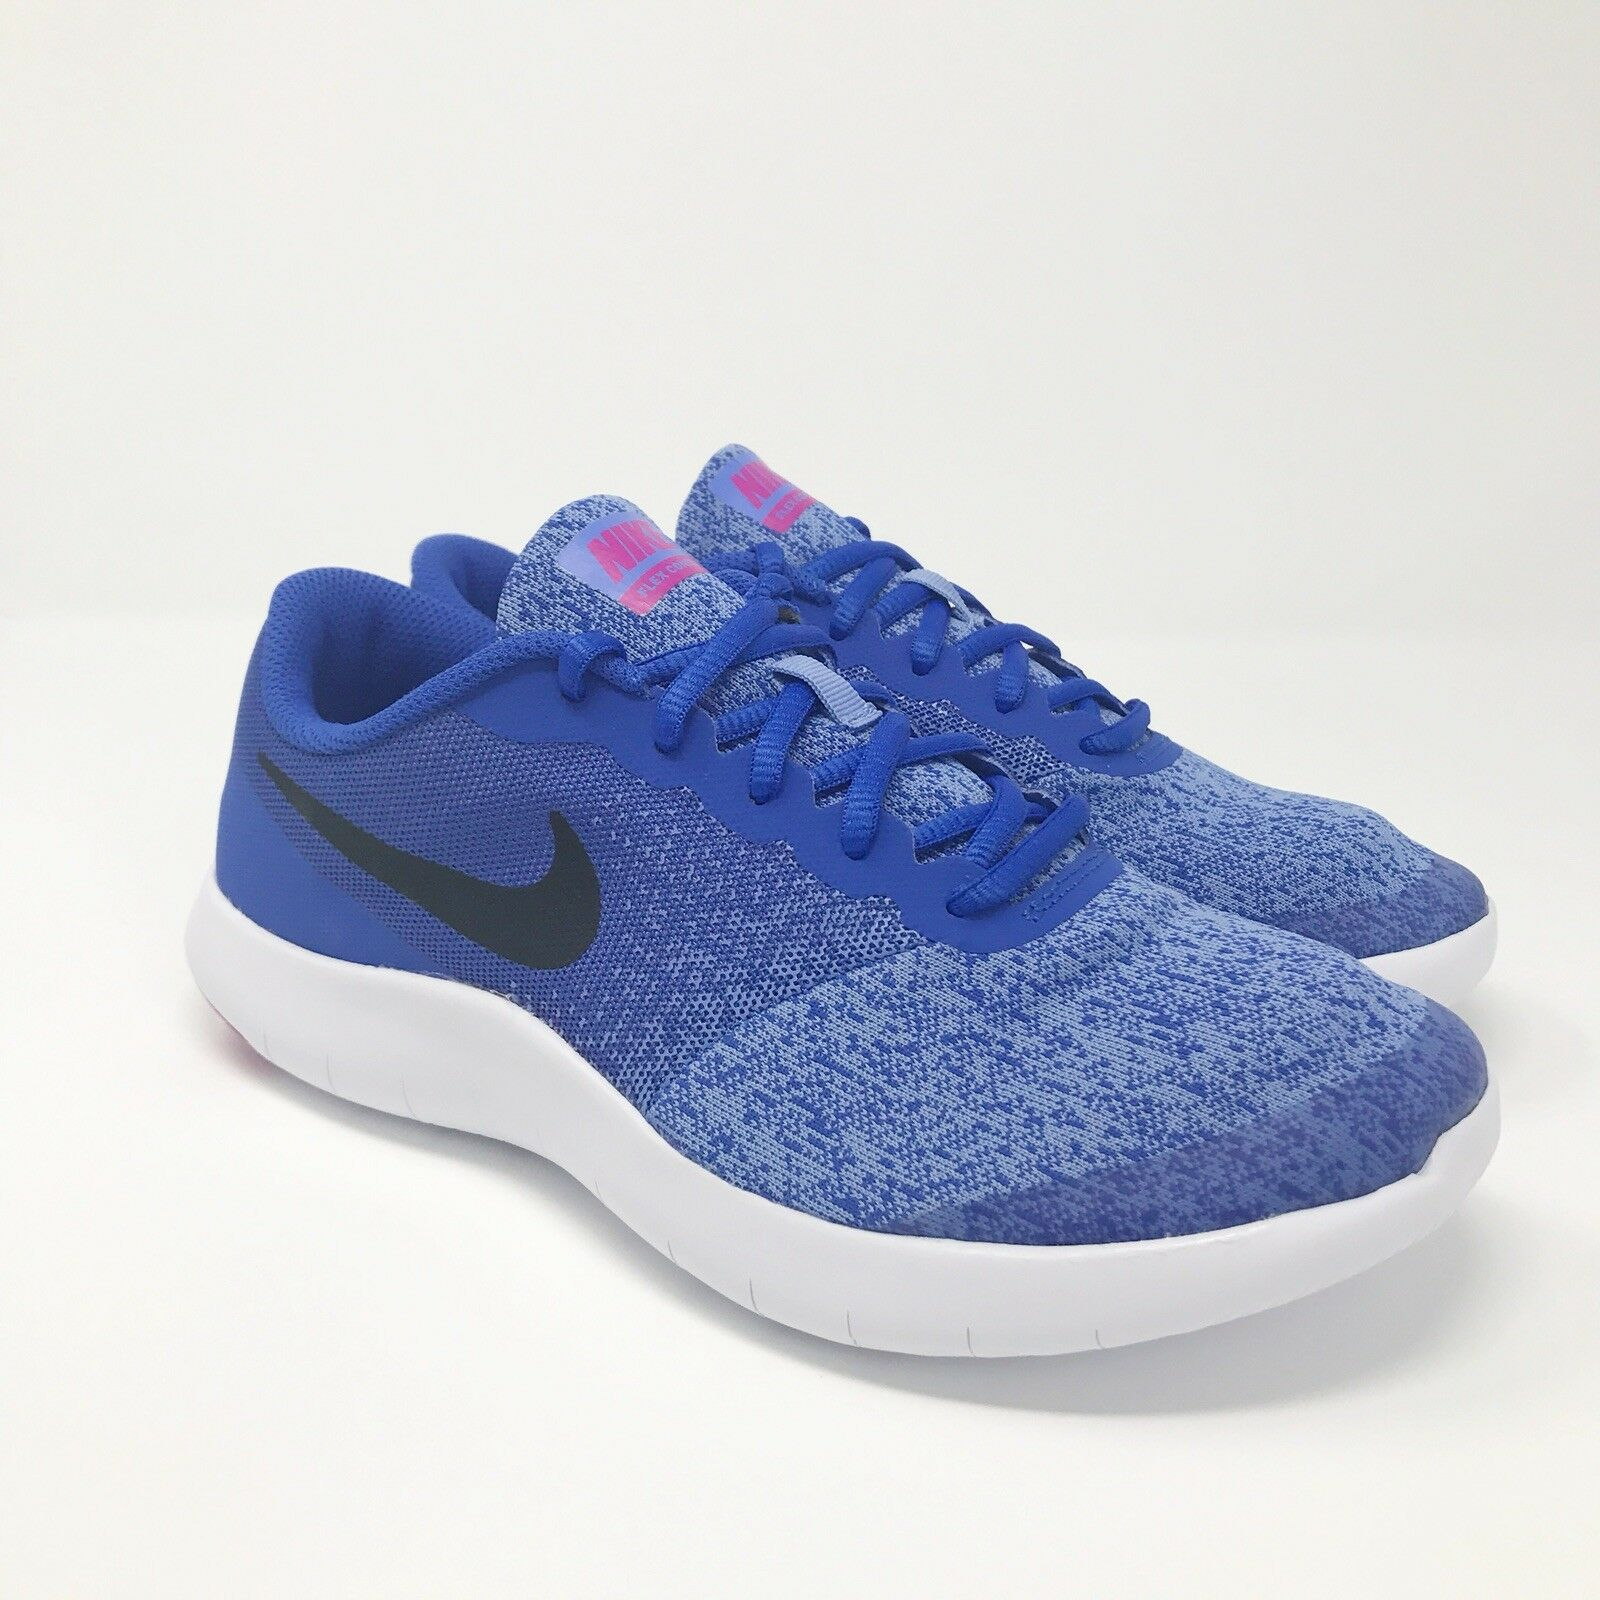 Nike Flex Contact Running shoes 917937-403 Size Size Size 6Y Womens 7.5 e40474